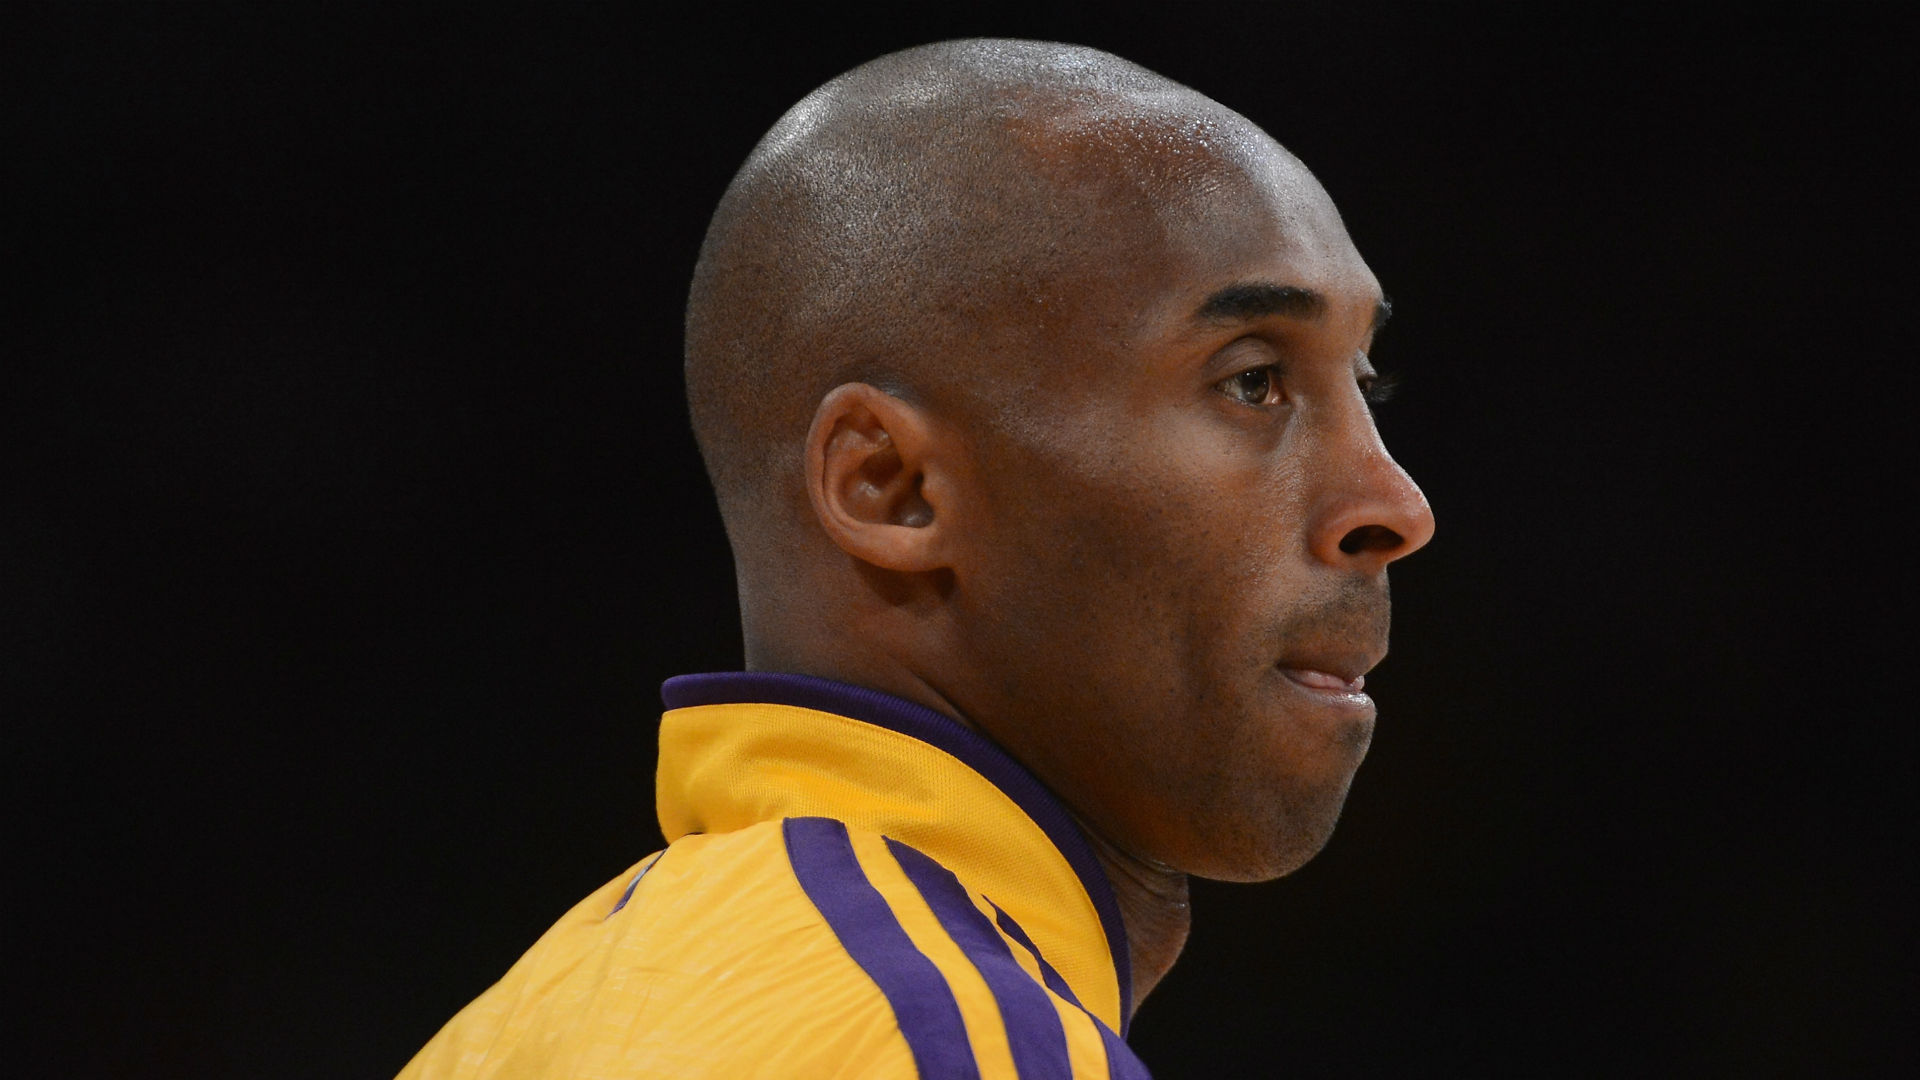 Kobe Bryant dead at 41: Sports world reacts to death of basketball legend